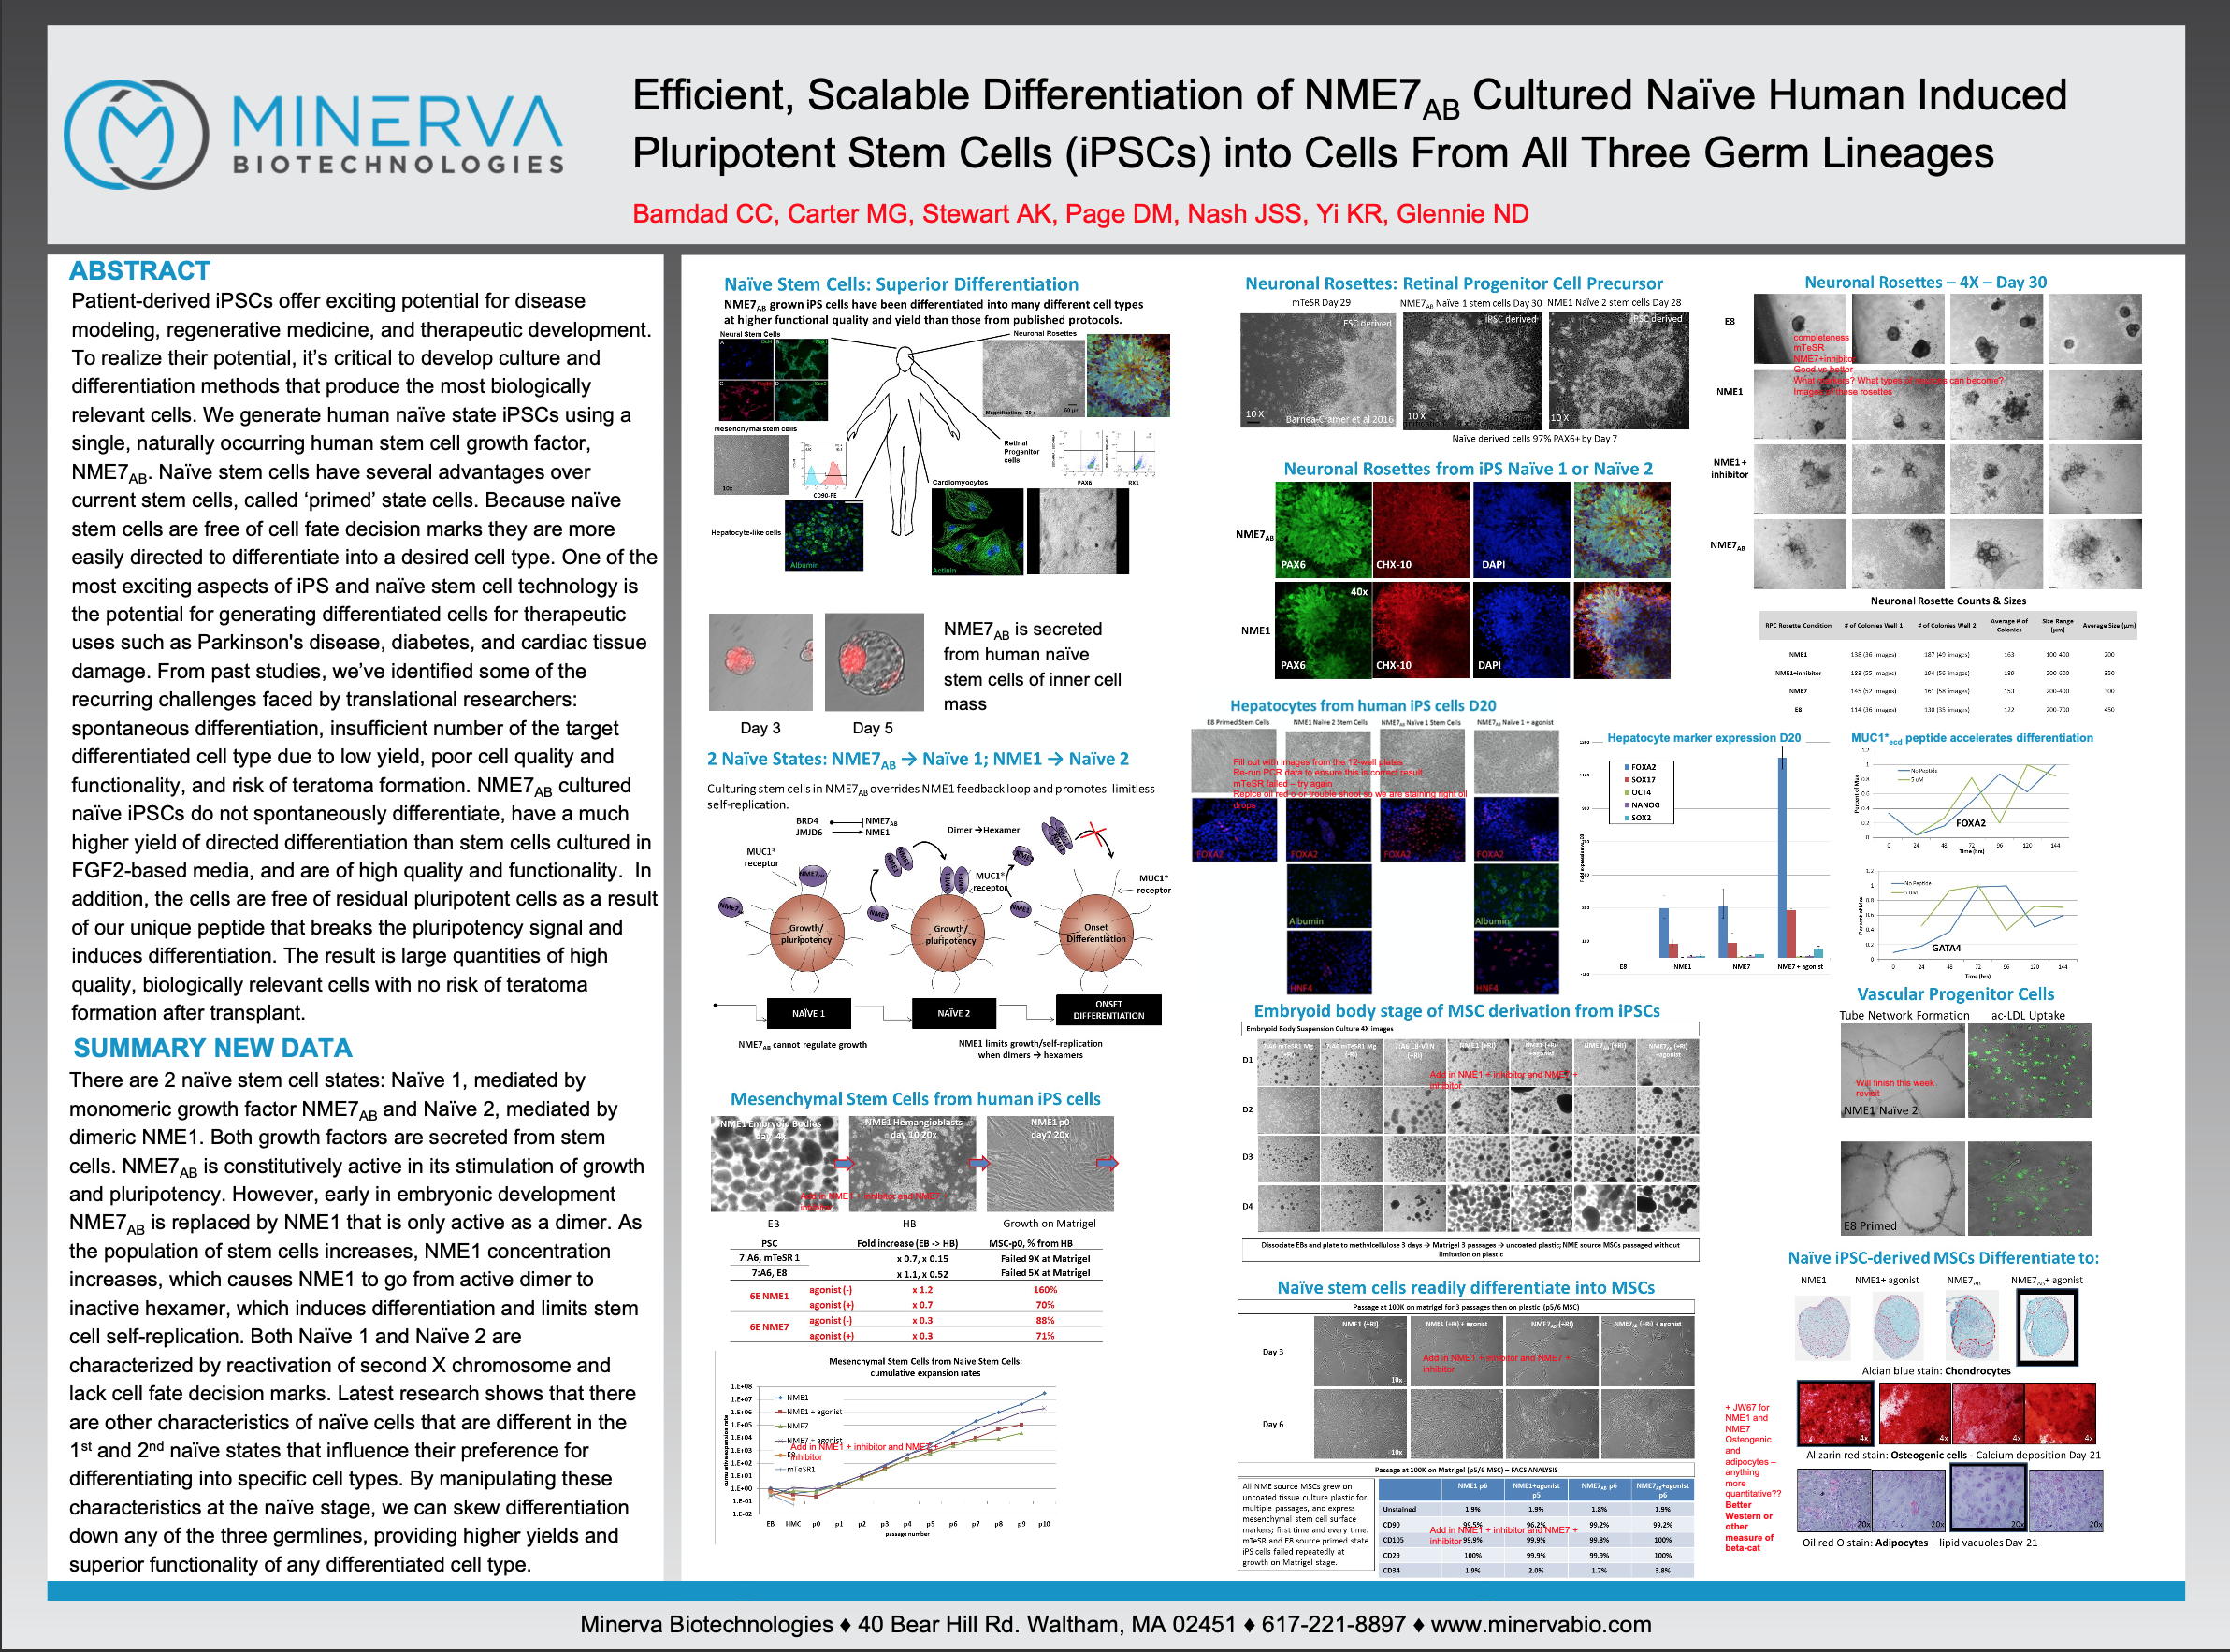 Efficient, Scalable Differentiation of NME7AB Cultured Naive Human Induced Pluripotent Stem Cells (iPSCs) into Cells From All Three Germ Lineages